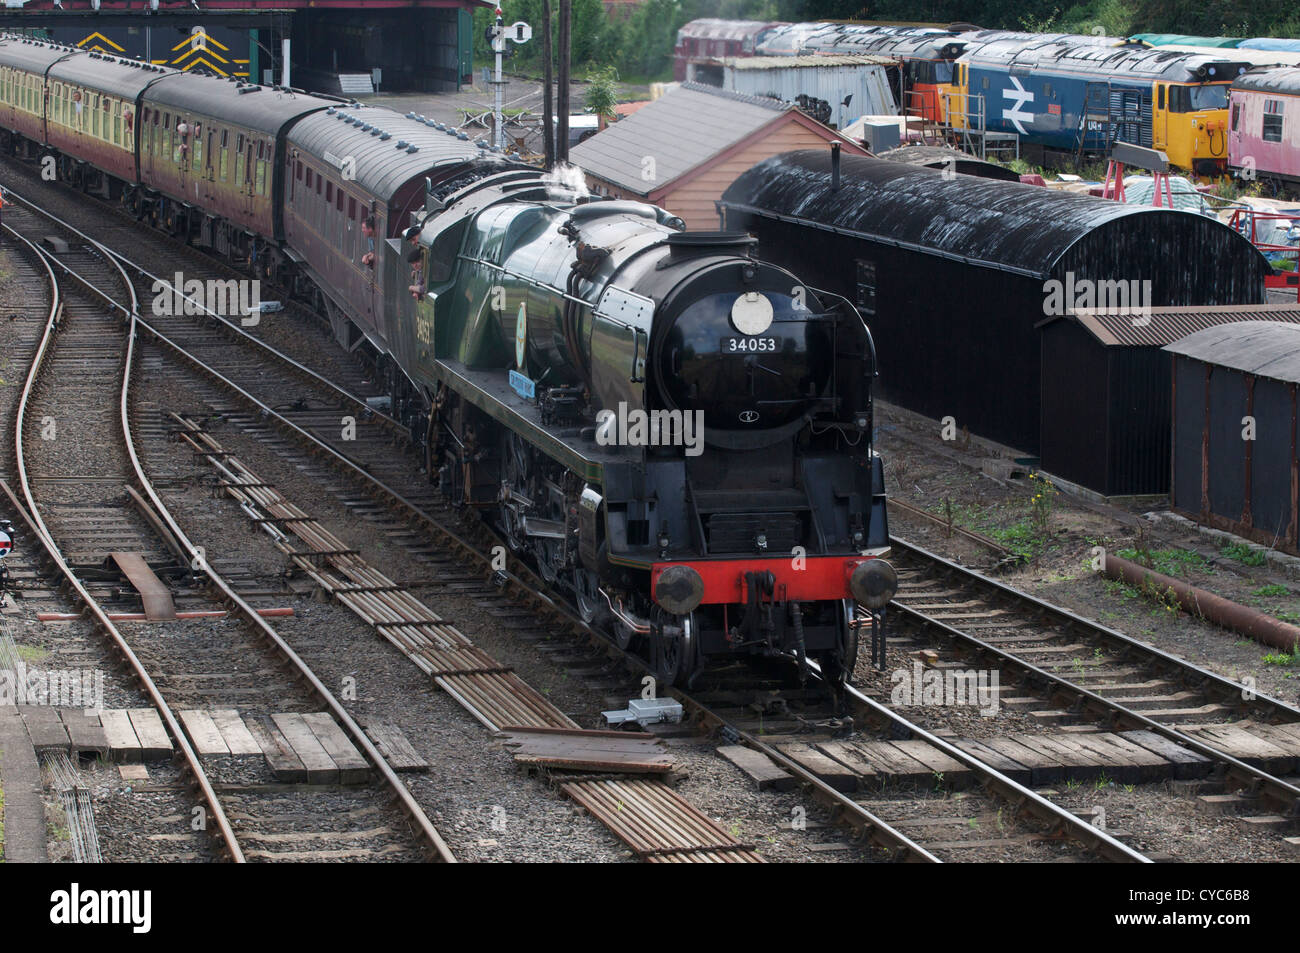 Sir Keith Park 34053 entering into Kidderminster Station on the Severn Valley railway. - Stock Image